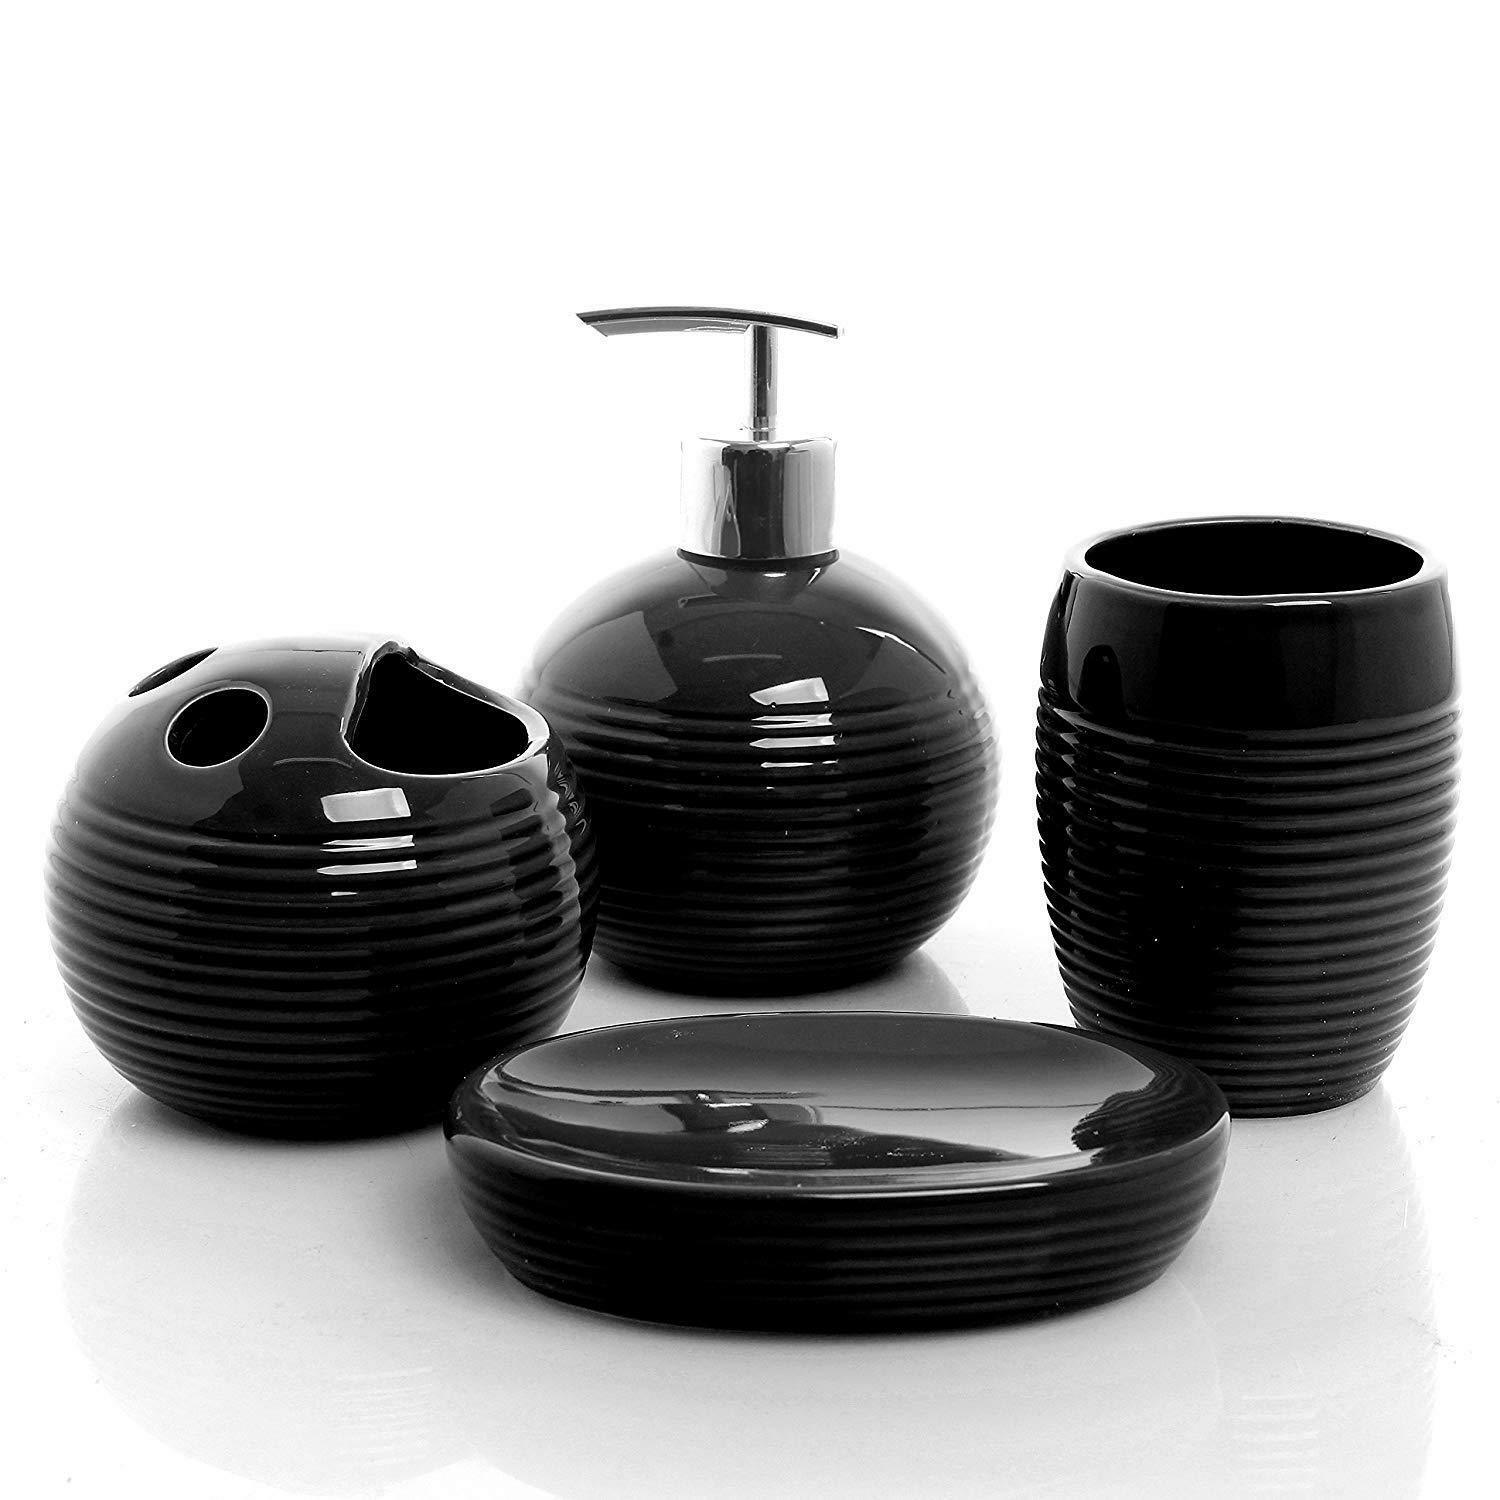 4 Piece Ceramic Bath Accessory Set - Black Ribbed